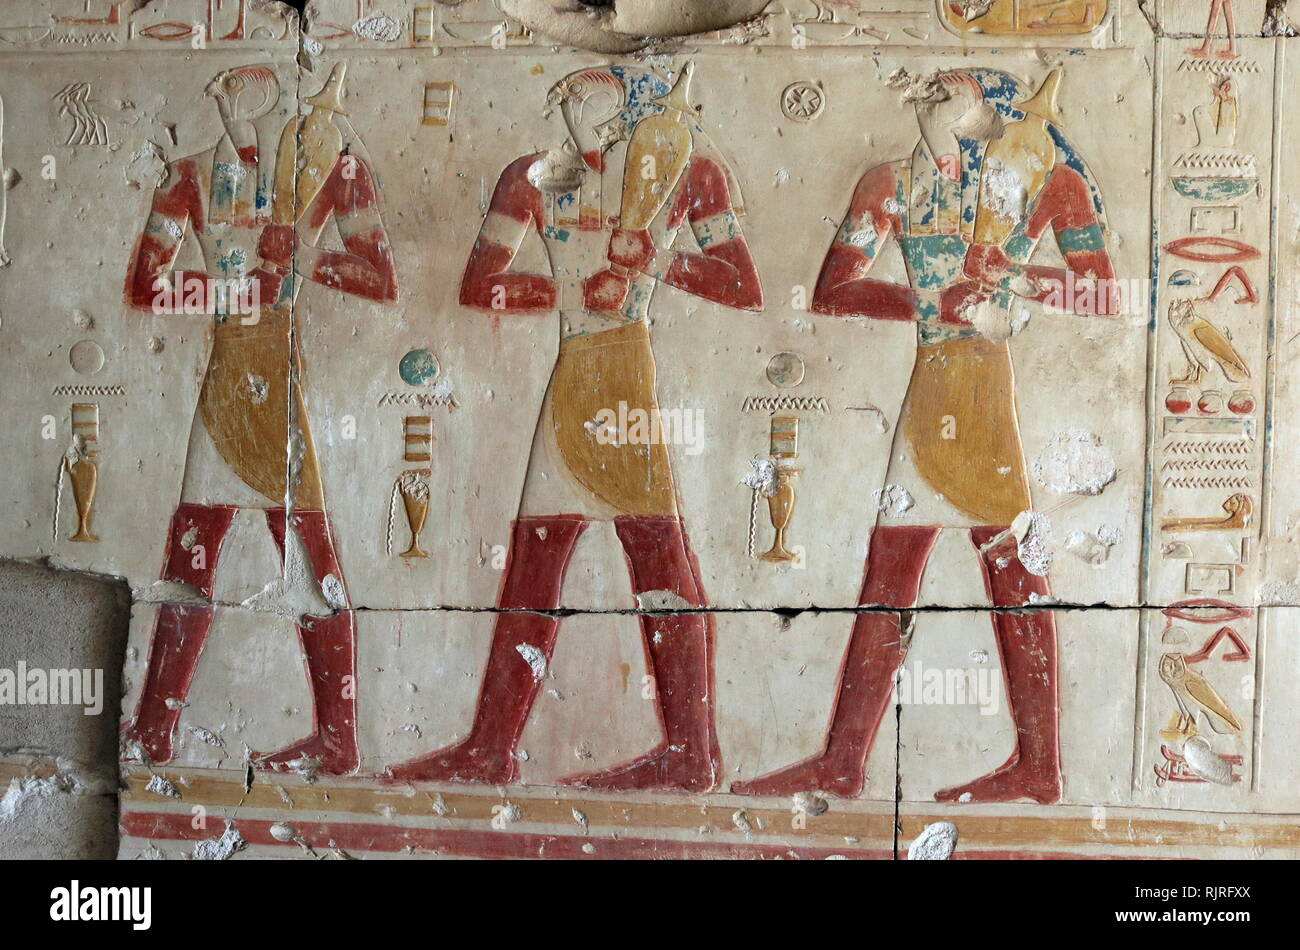 Abydos, one of the oldest cities of ancient Egypt; The souls of Pe. The Souls of Pe and Nekhen, mentioned first in the Pyramid Texts, refer to the ancestors of the ancient Egyptian kings. Nekhen and Pe, whose successors the Egyptian pharaohs were thought to be. - Stock Image